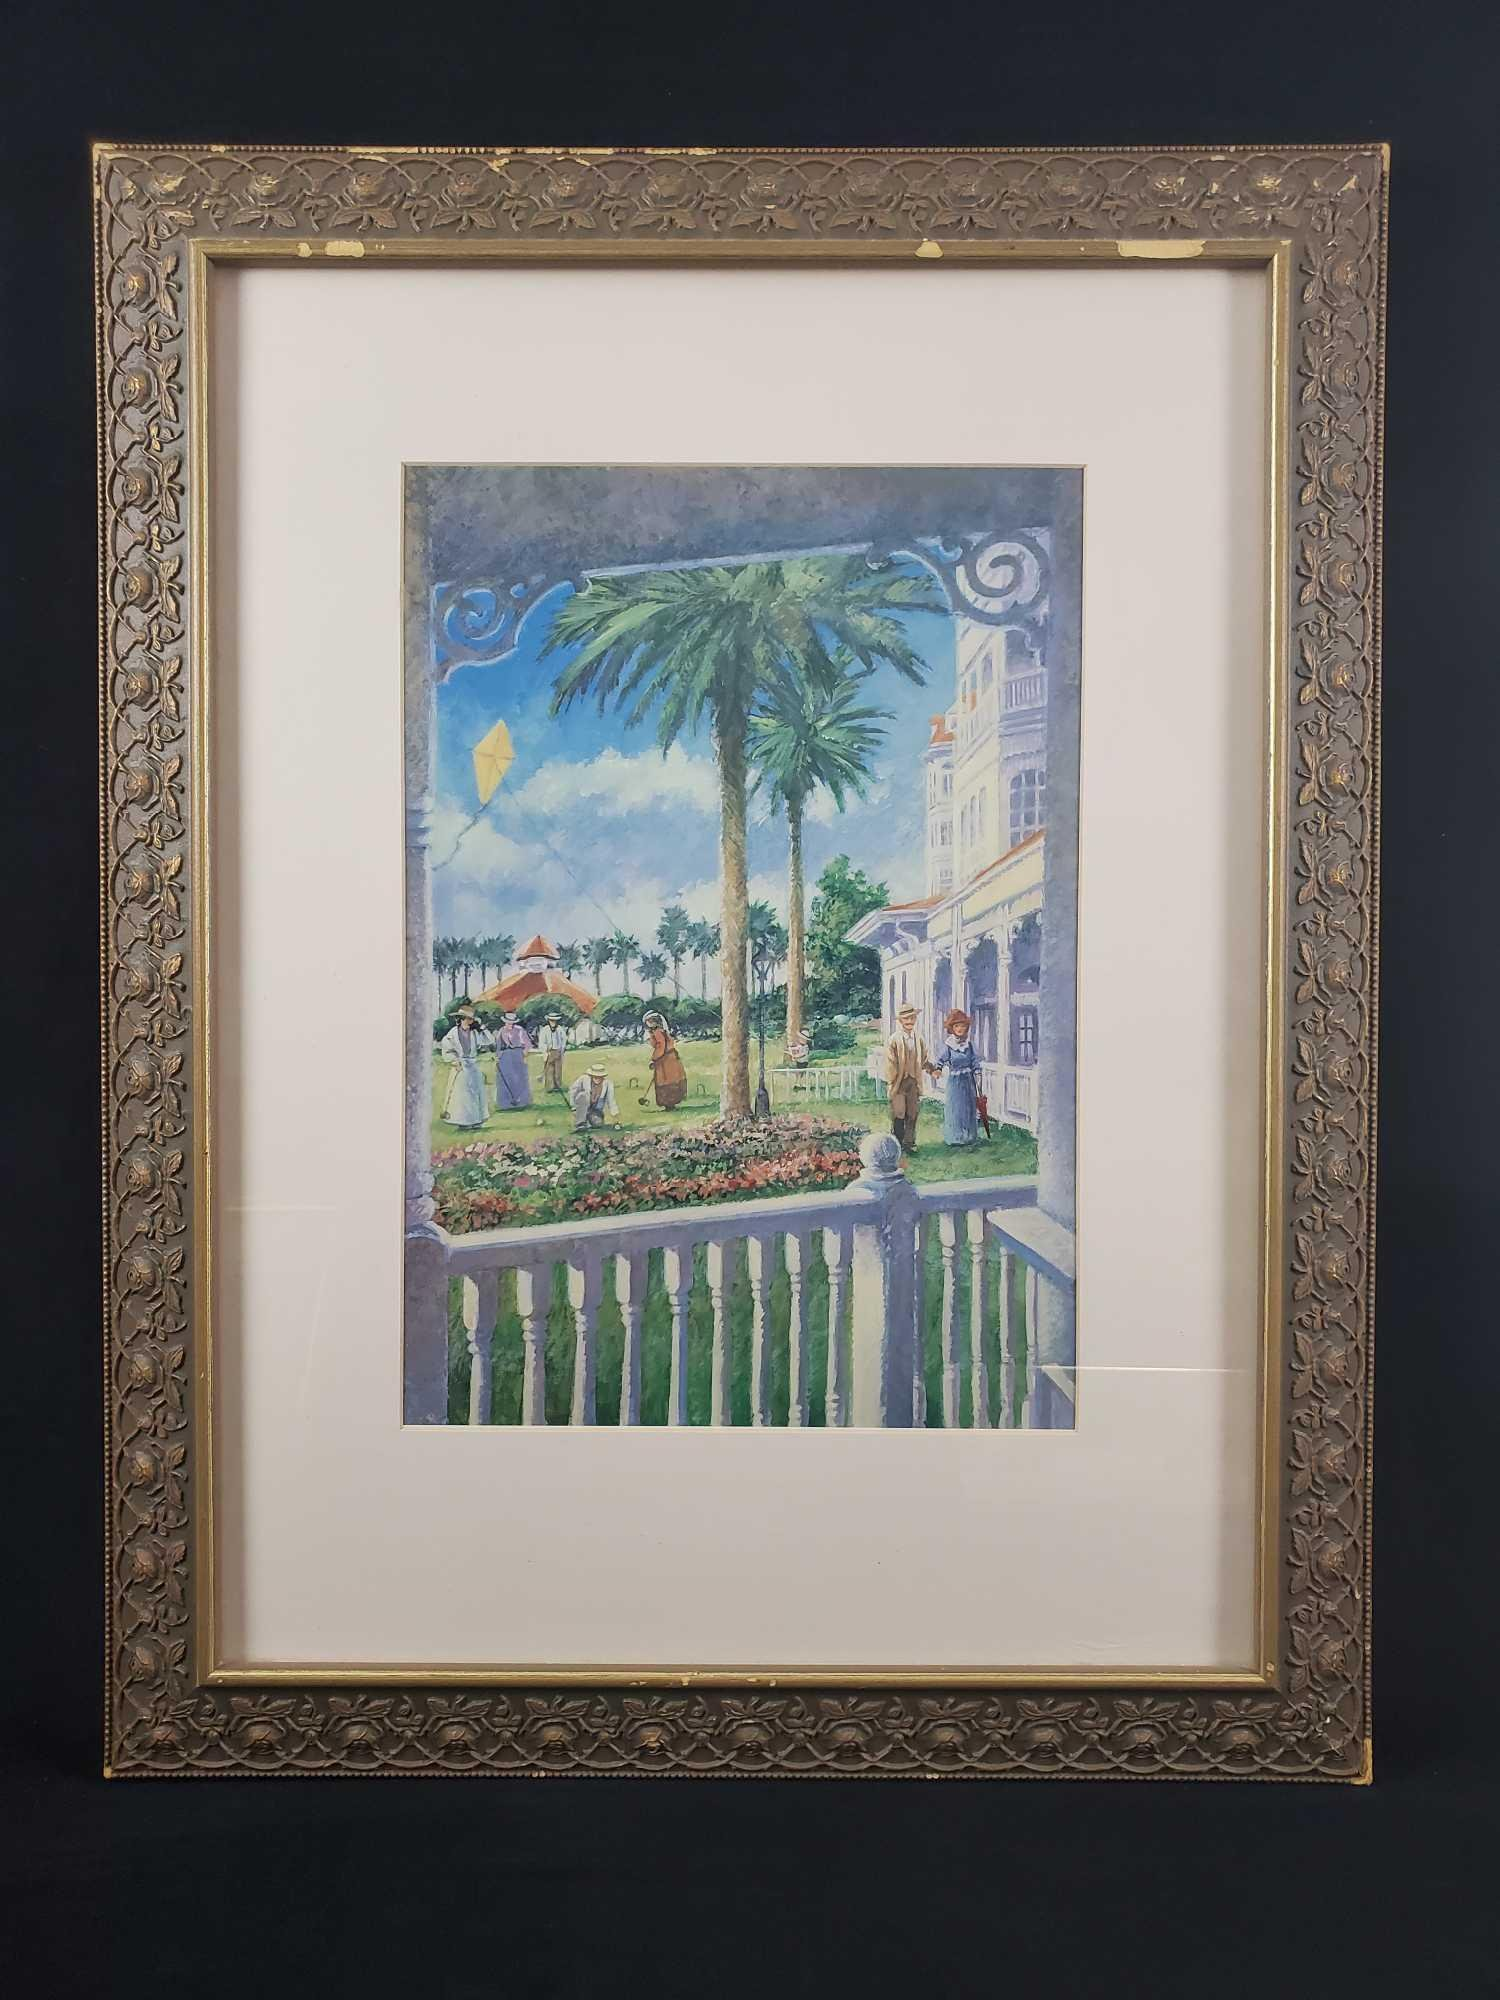 Framed Art Disney Grand Floridian Hotel